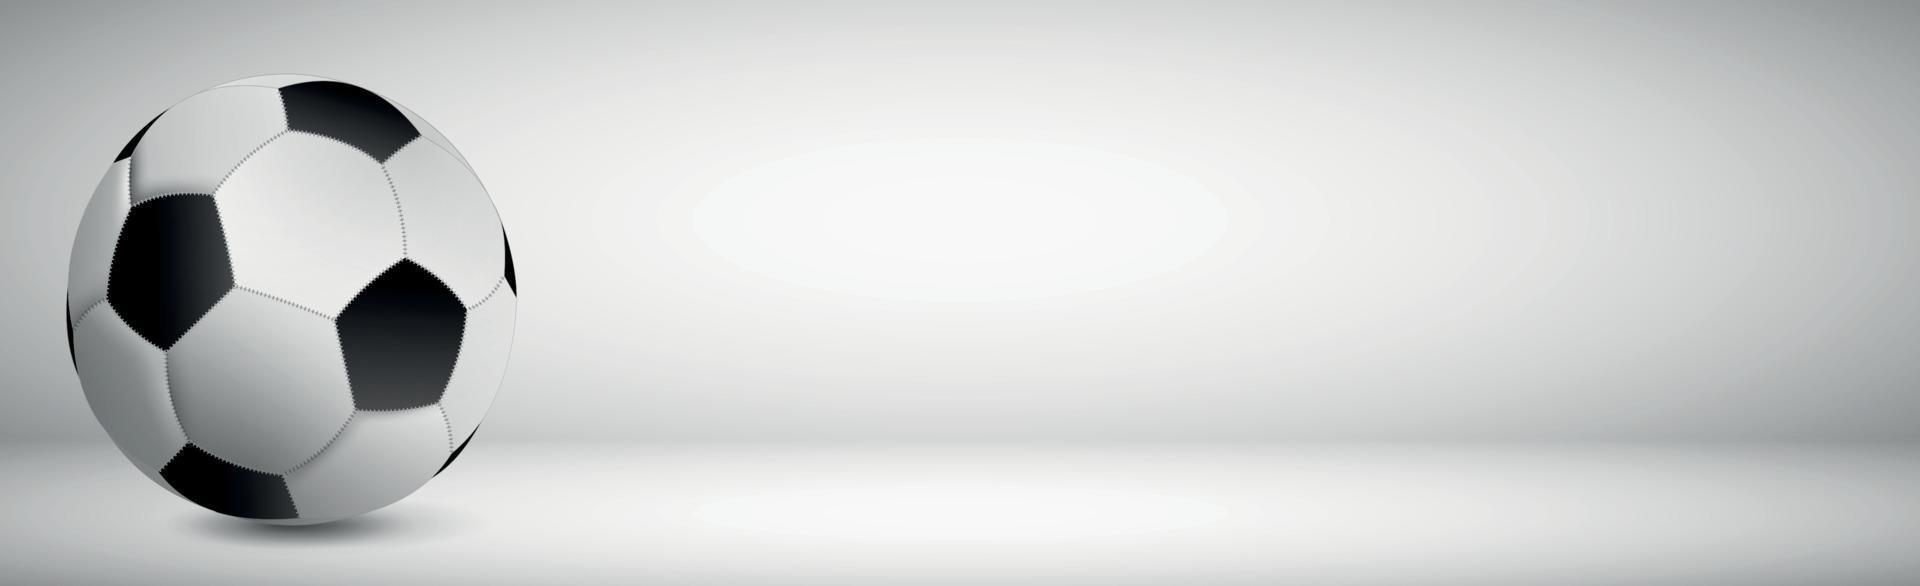 Realistic soccer ball on a gray background vector